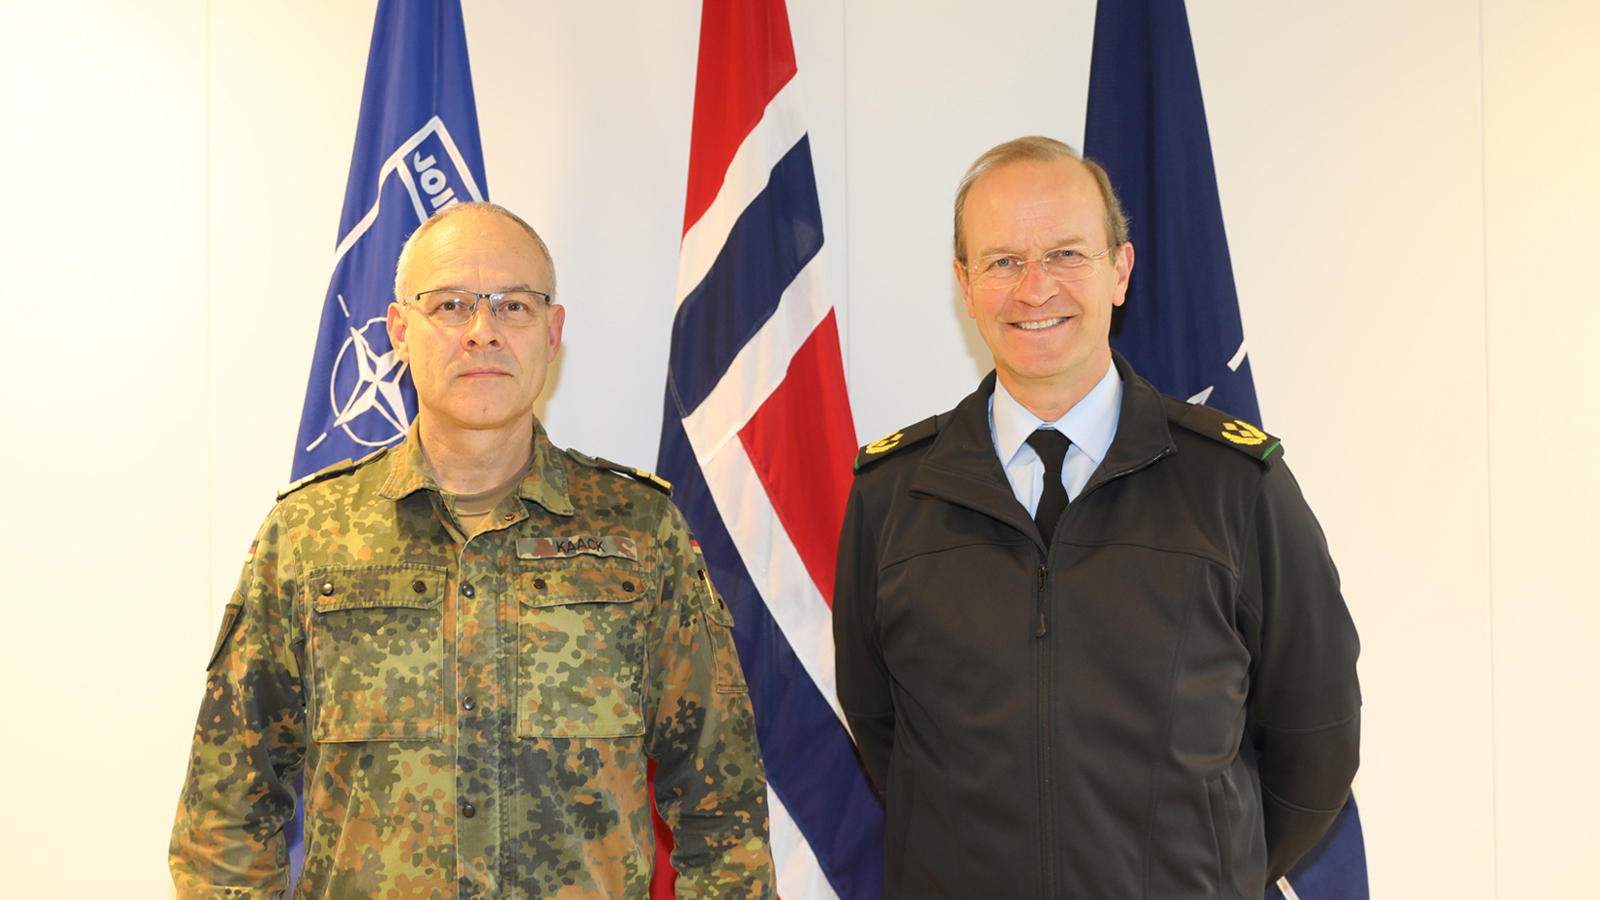 The Deputy Commander of Headquarters Eurocorps visits Joint Warfare Centre